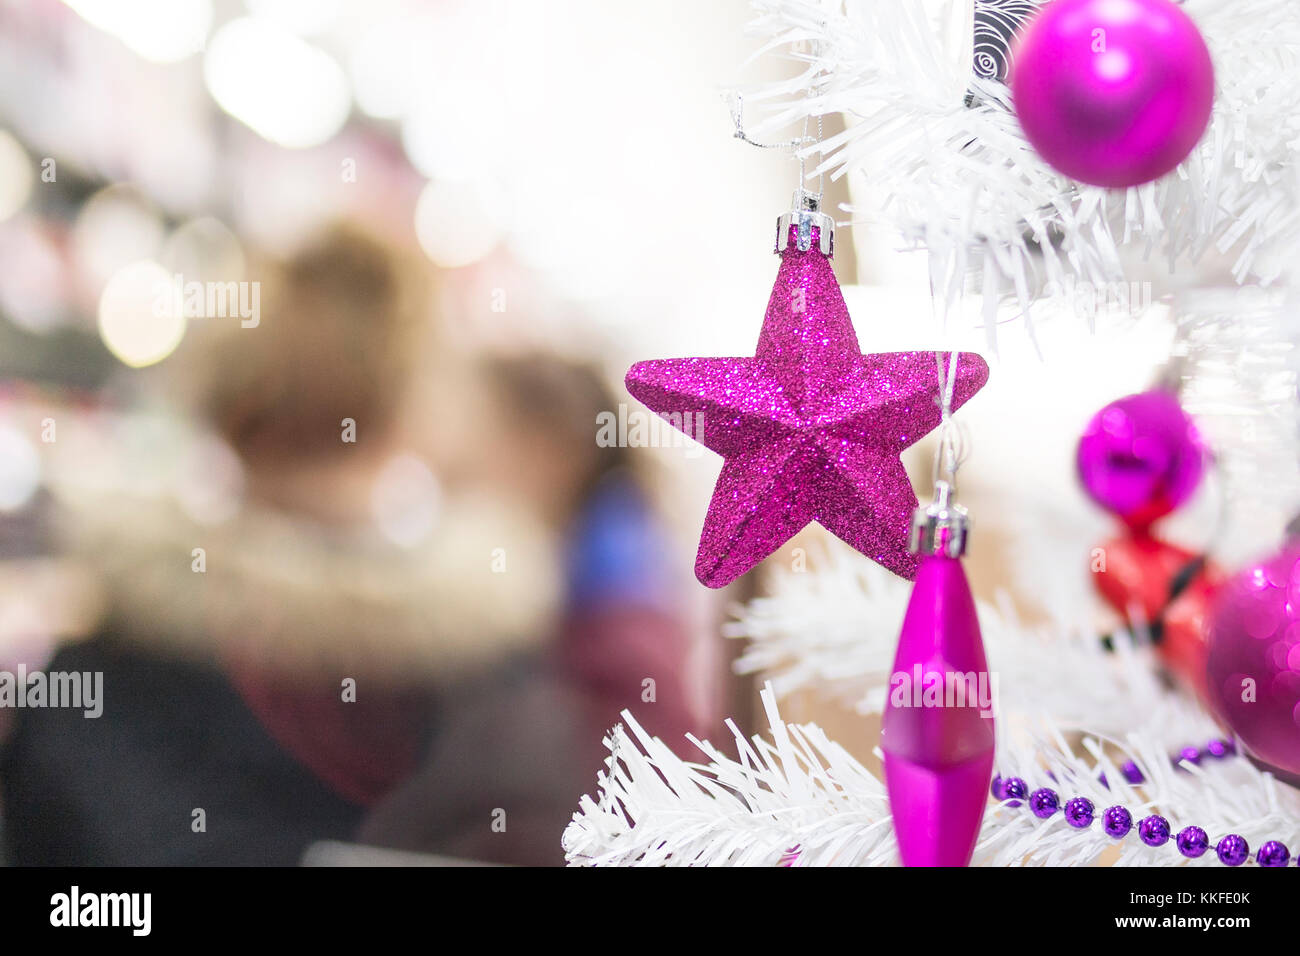 Purple Star Baubles And Decorations Hanging On A White Christmas